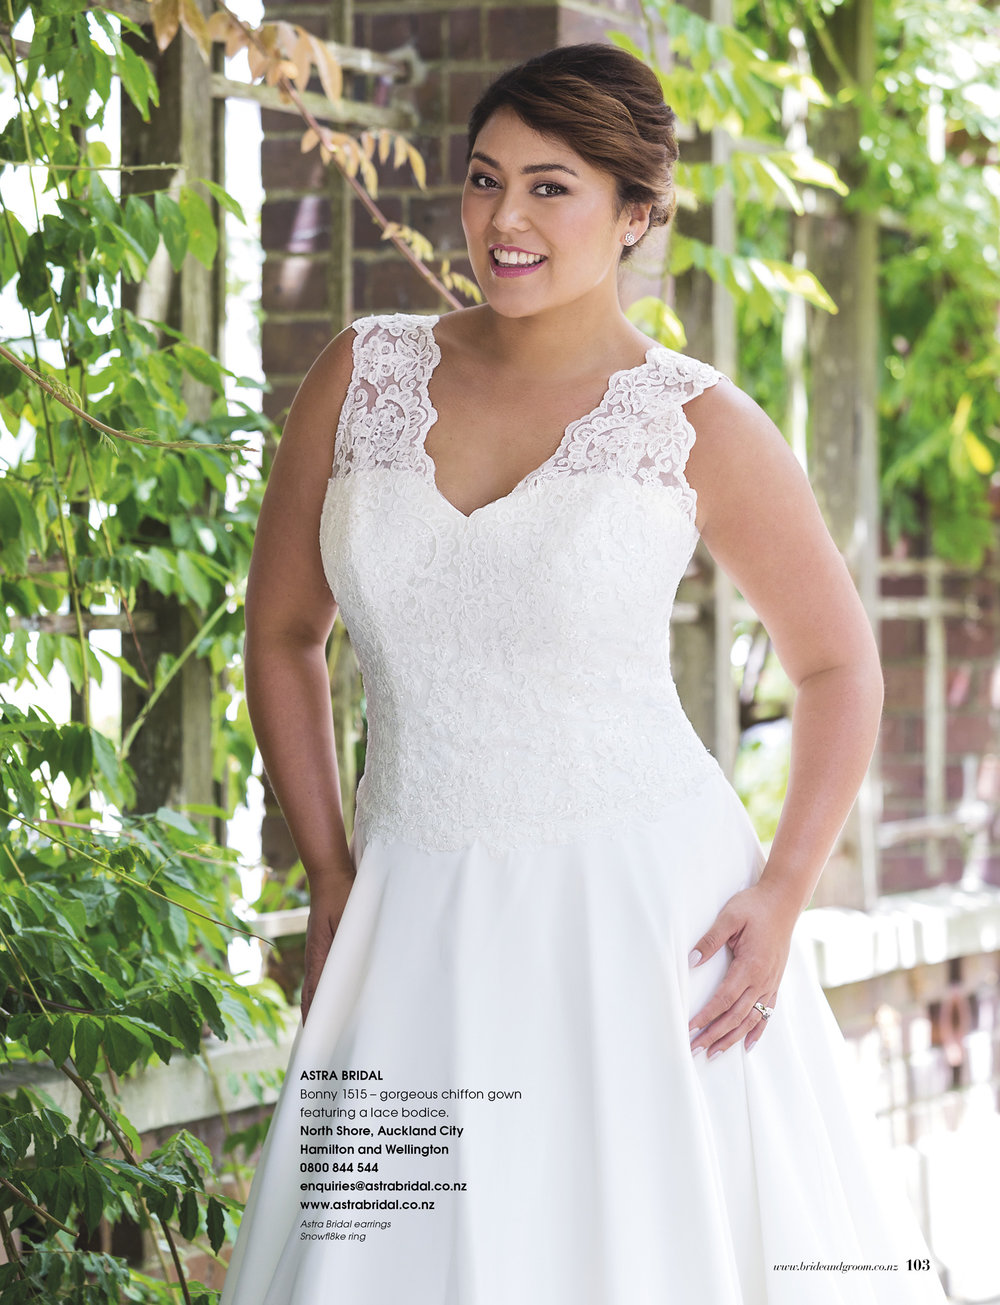 Bonny 1515 - From the unforgettable range by Bonny, starting at size 18, gowns specifically designed for the bride with more.